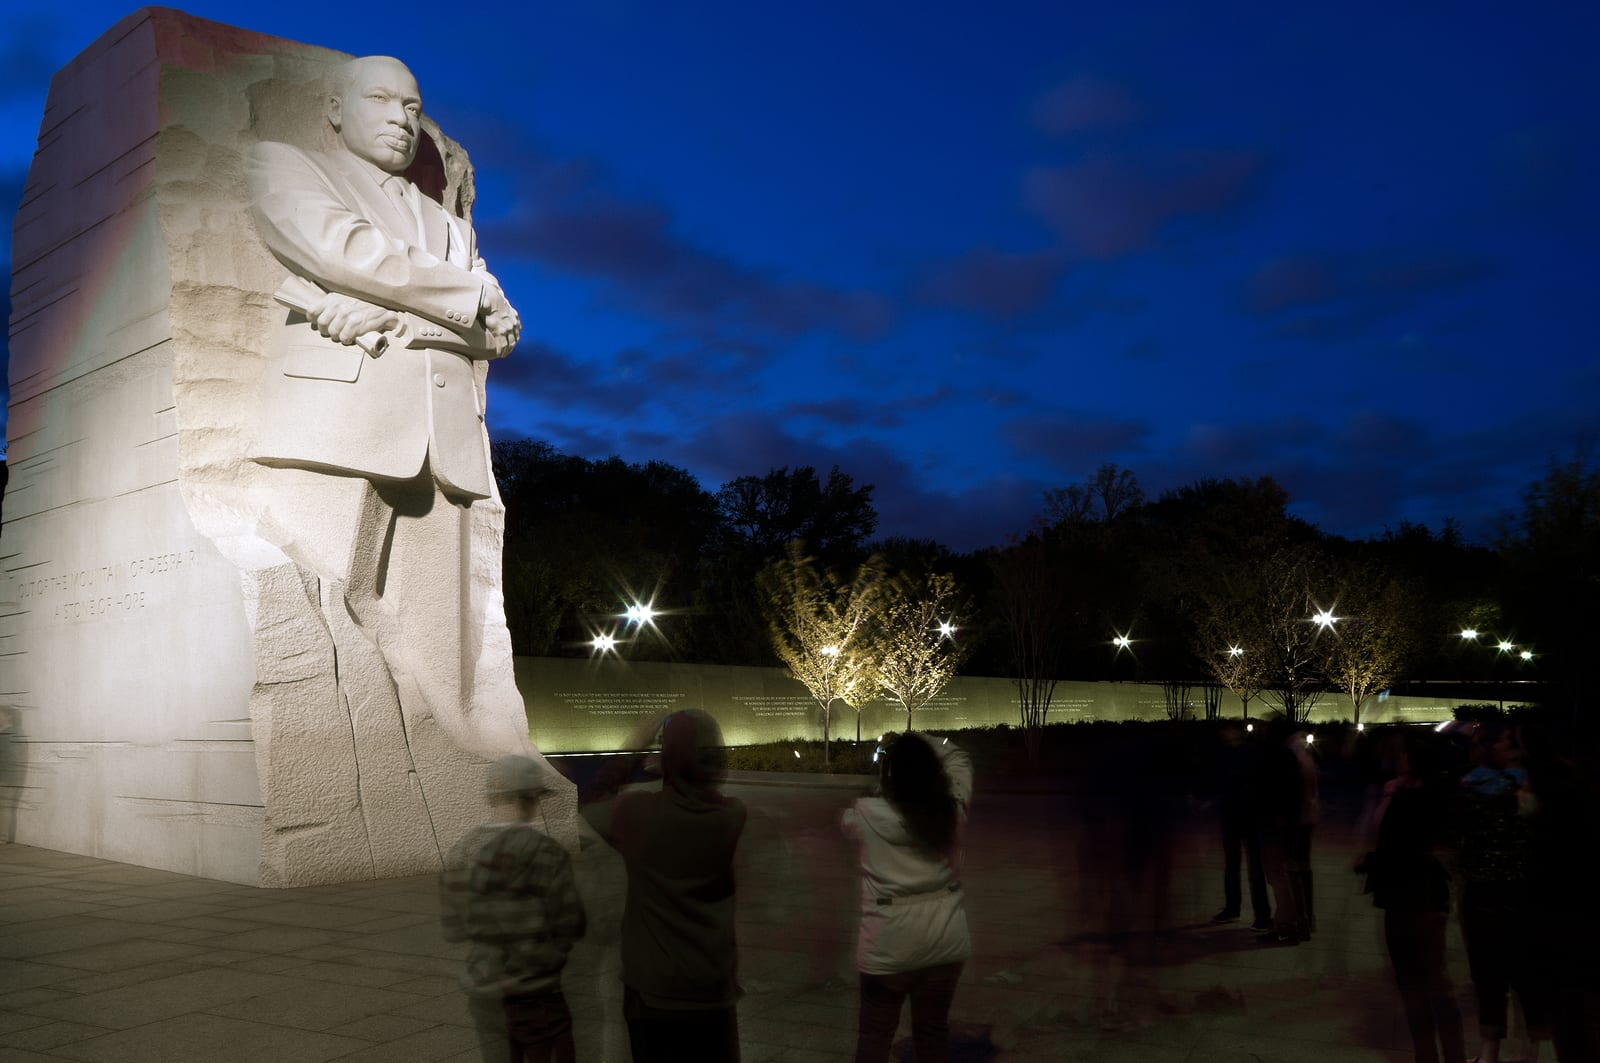 Statement by US Secretary of Labor Eugene Scalia on Martin Luther King Jr. Day